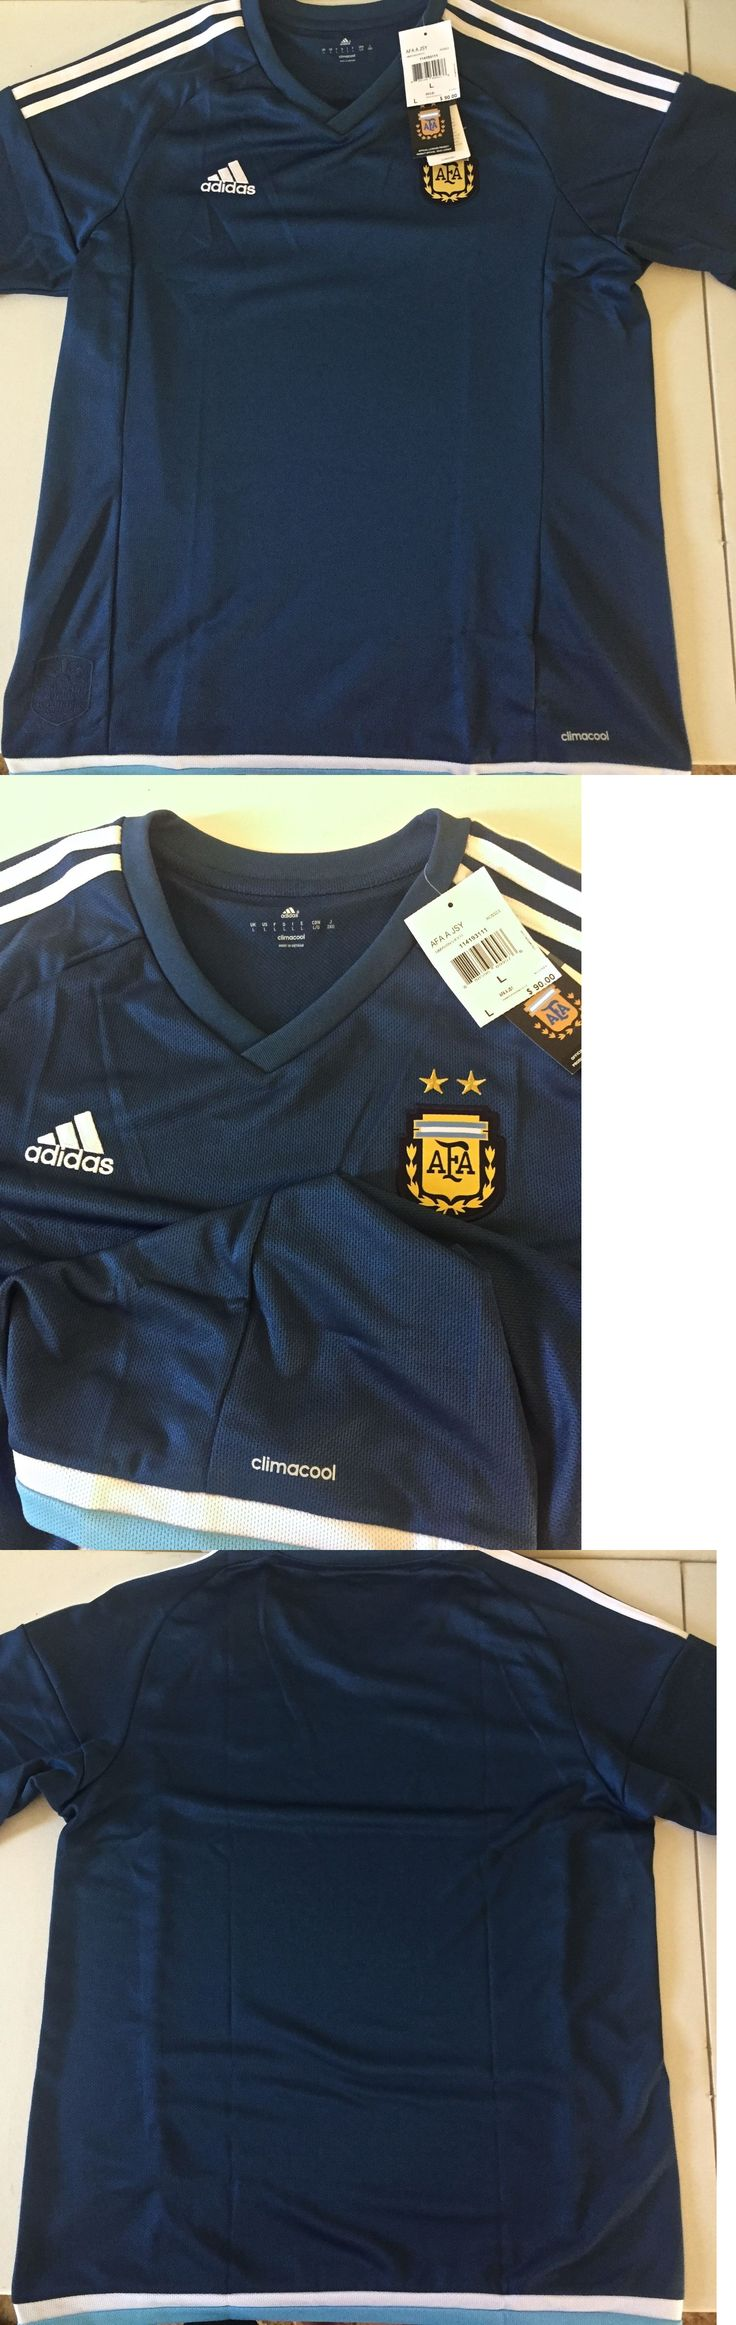 Soccer-National Teams 2891: Nwt Adidas Argentina Soccer Futbol 2016 Away Jersey - Mens Large Blue -> BUY IT NOW ONLY: $35 on eBay!